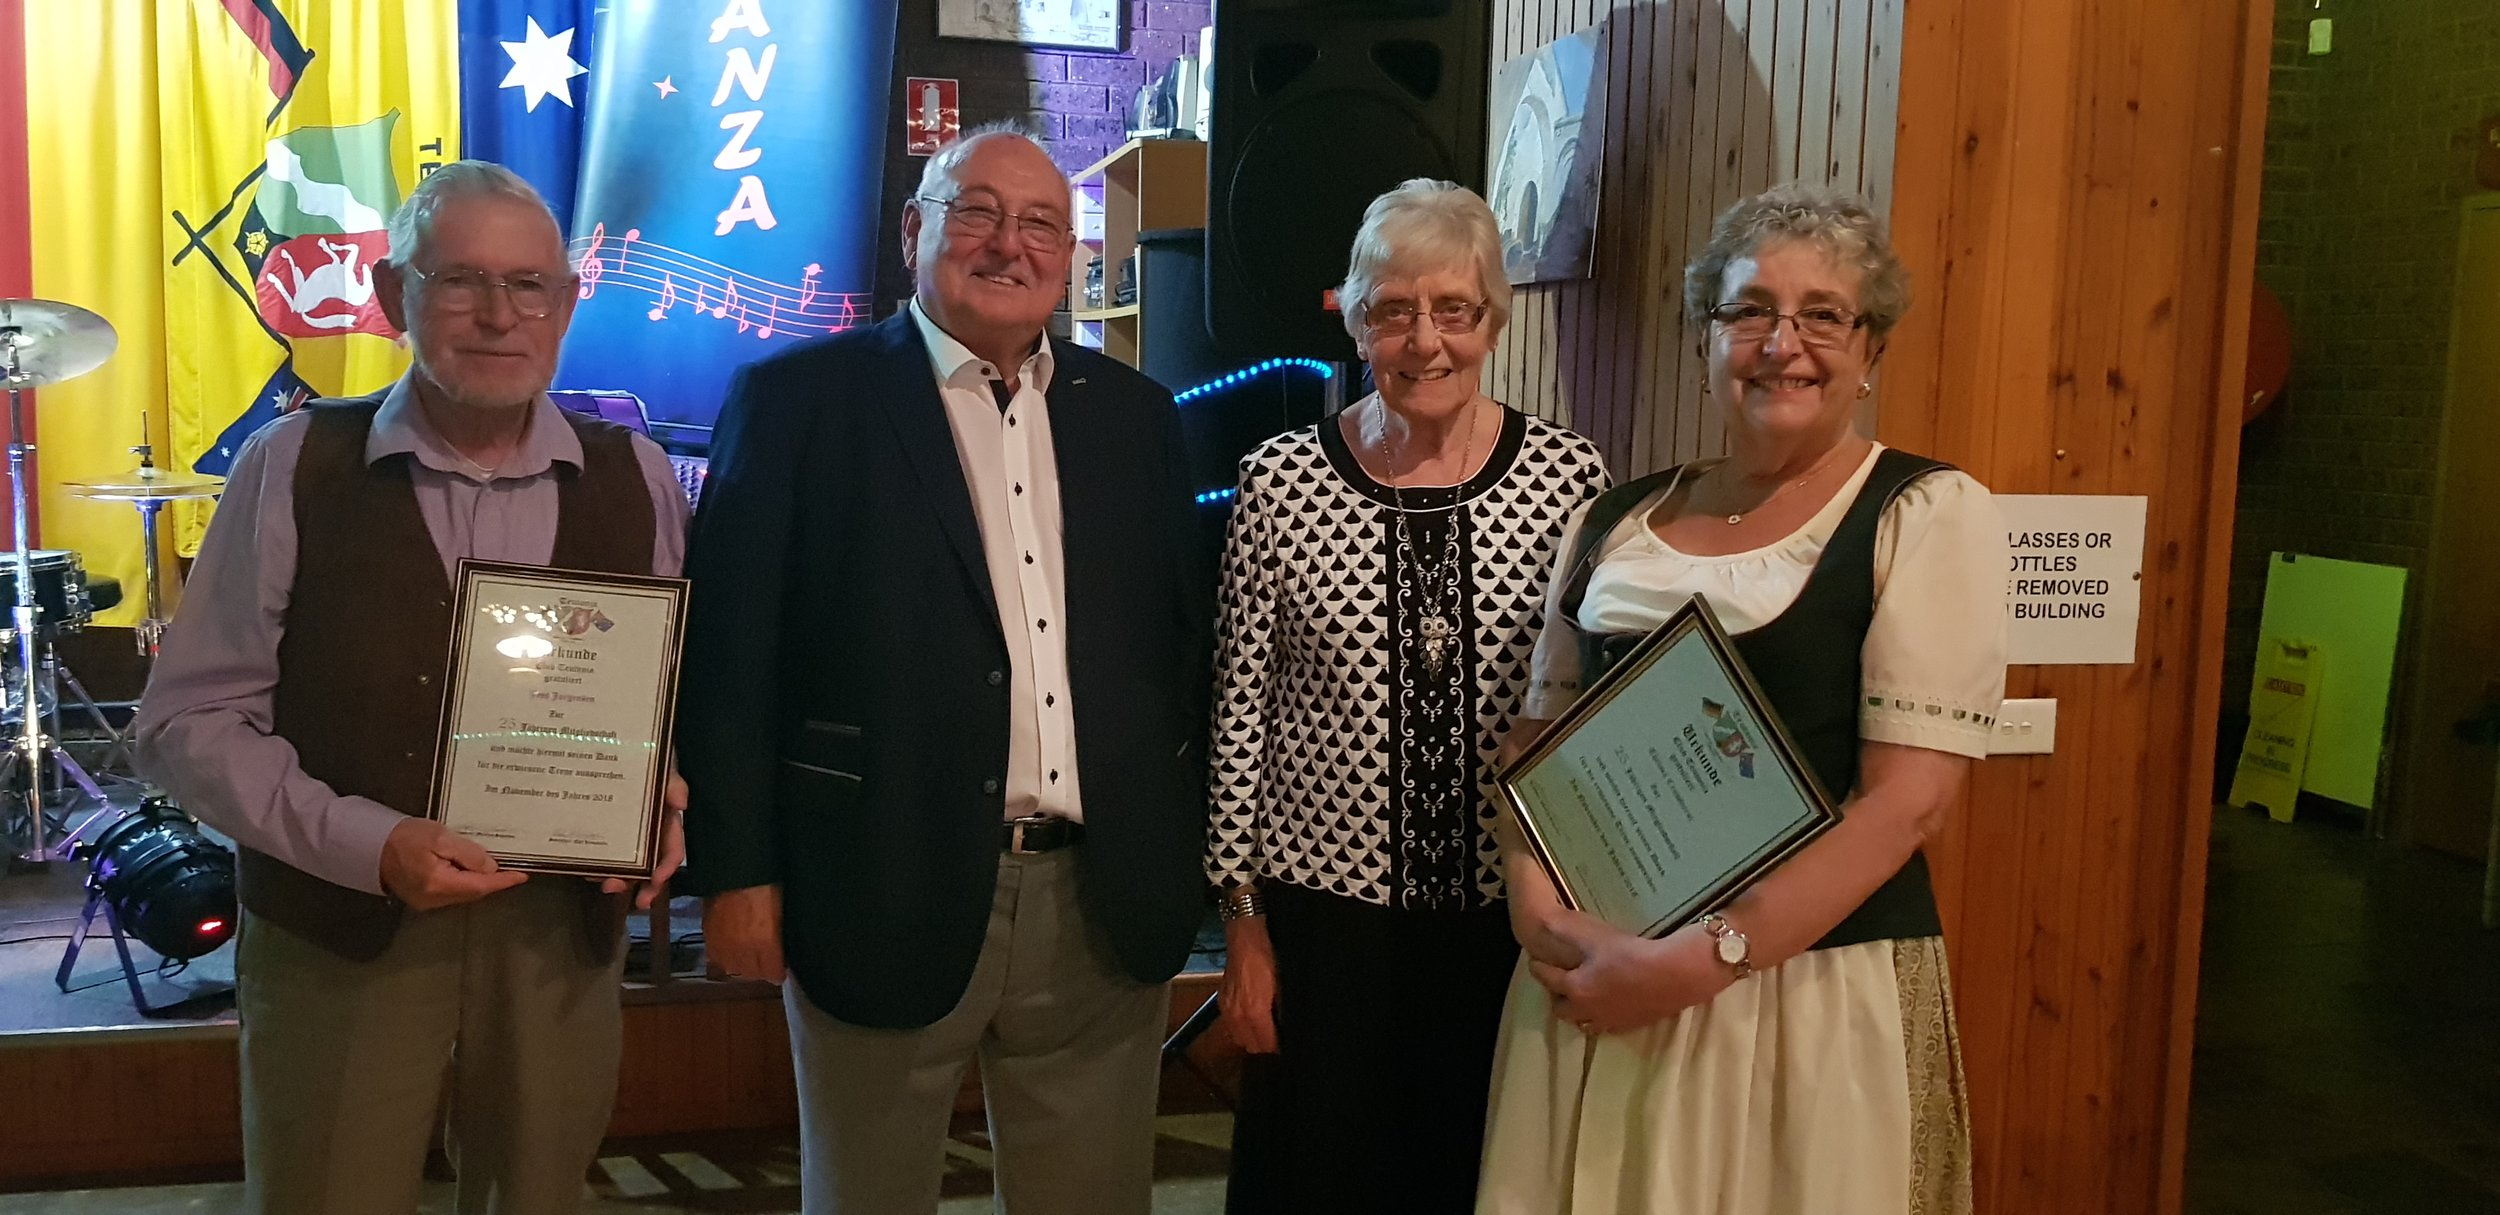 Thelma Crowhurst and Jes Jorgensen join the 25 Year membership Club presented on members night 24th November 2018